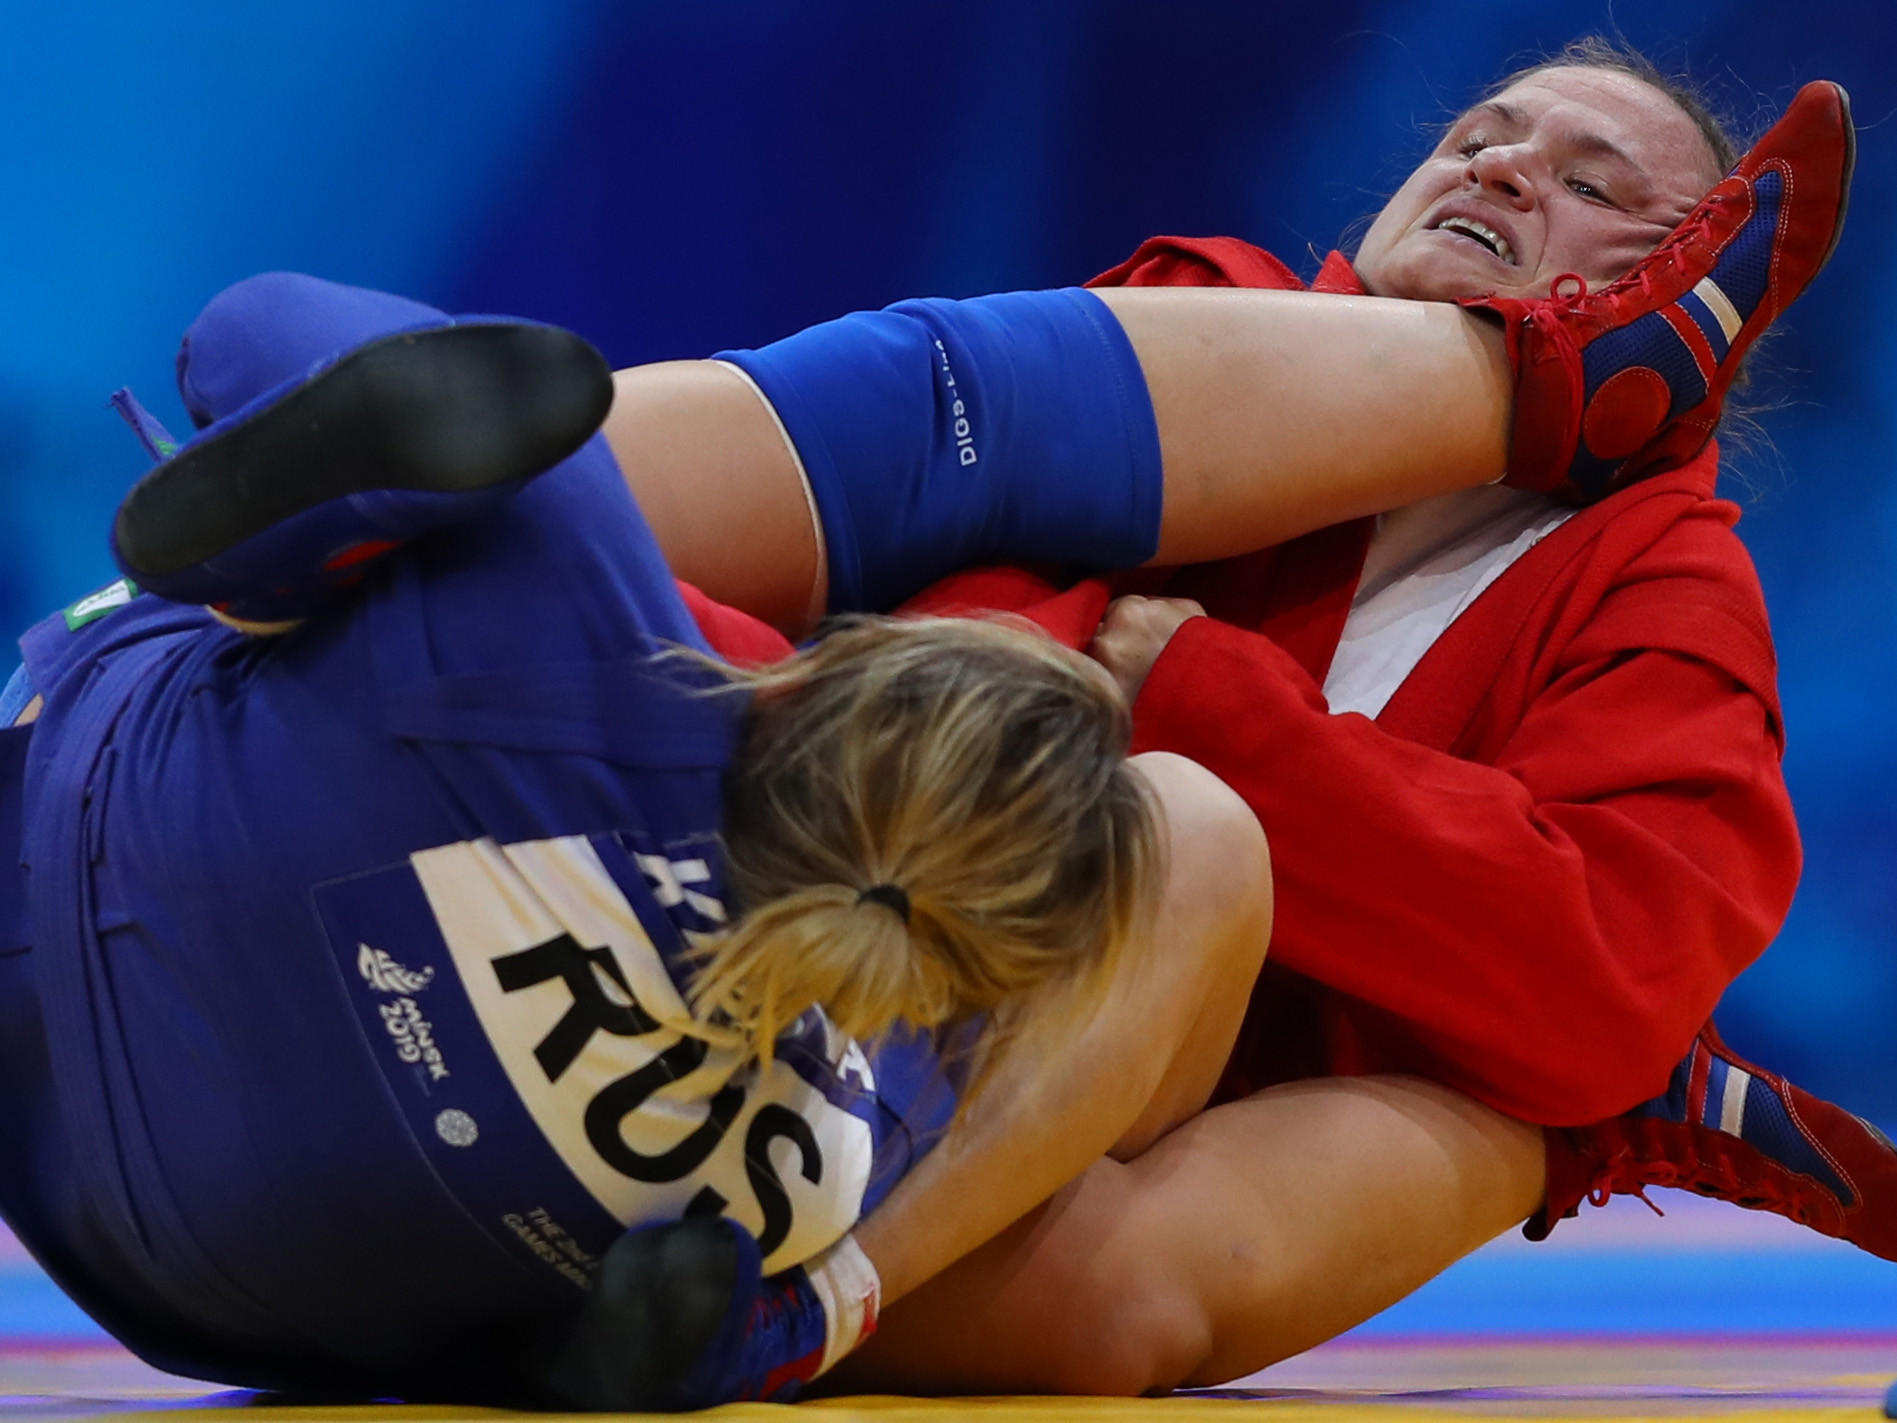 FIAS President Vasily Shestakov claims Russian dominance in sambo is dropping each year as the sport grows more popular ©Getty Images